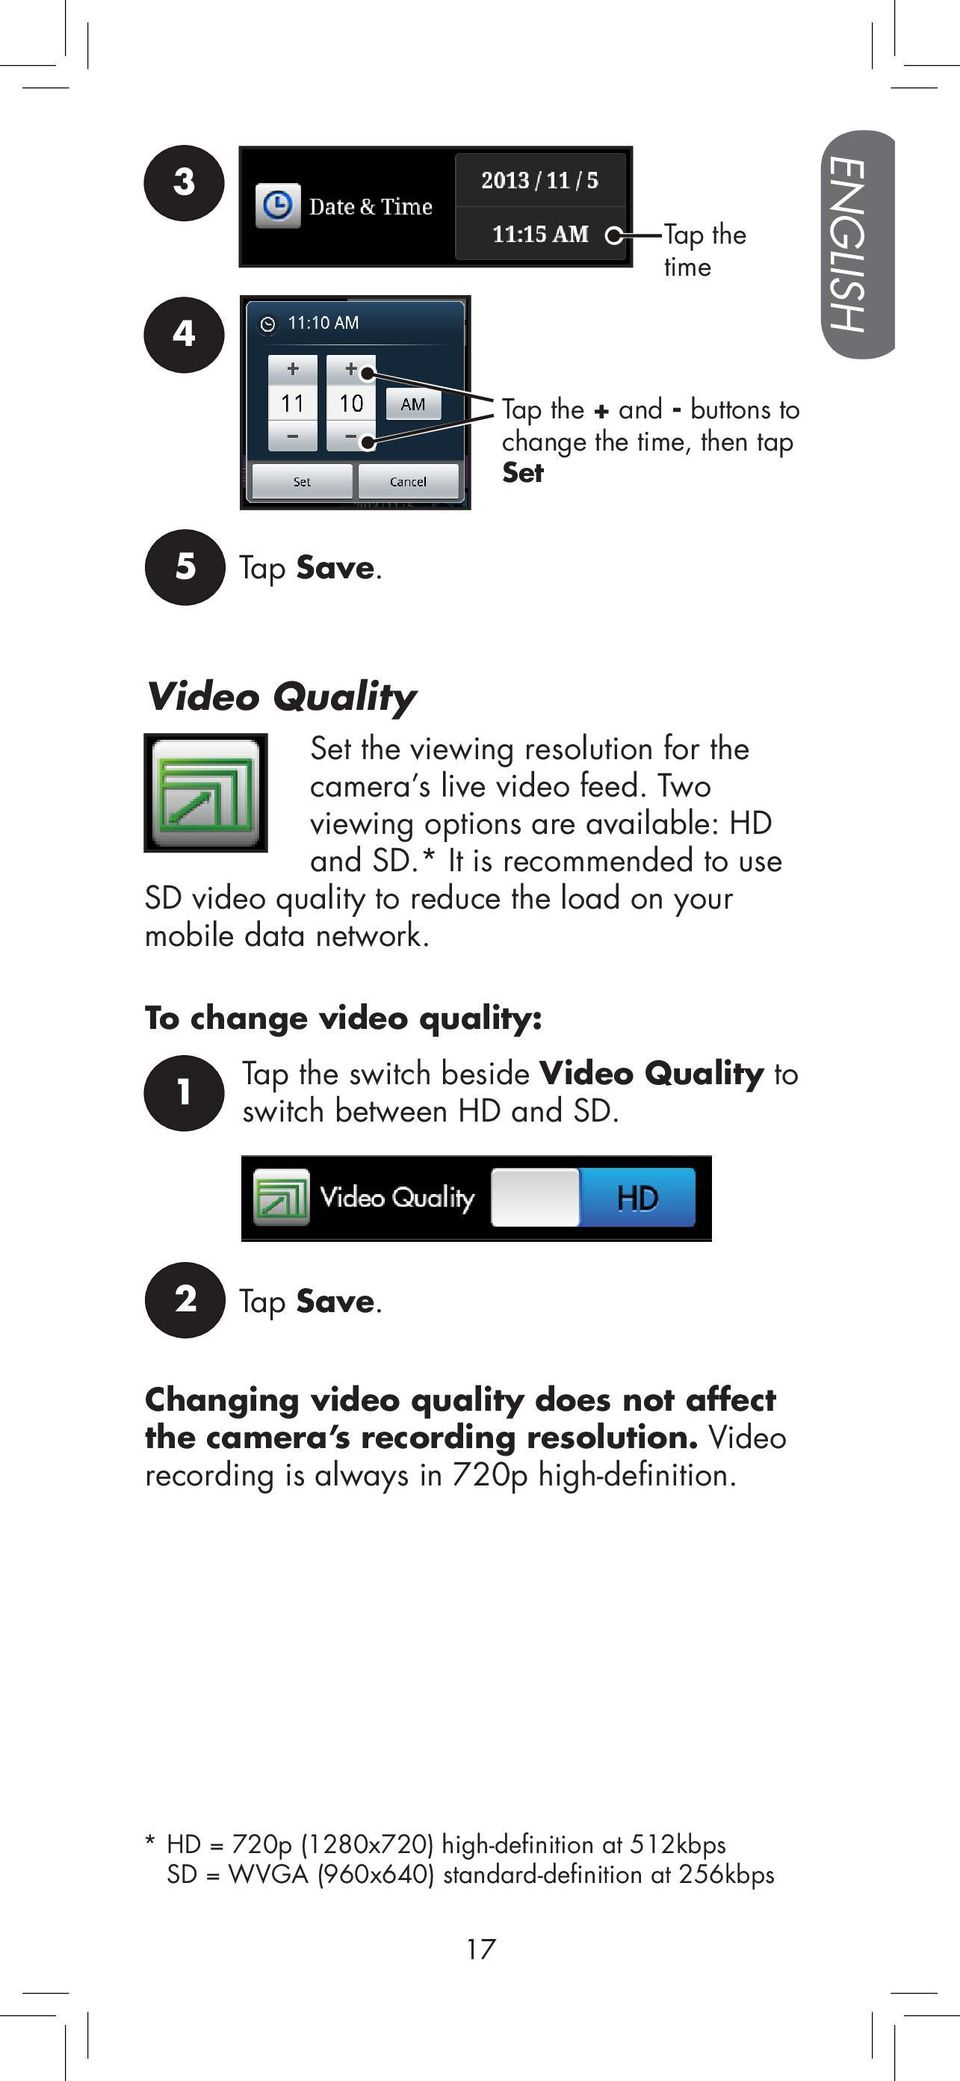 * It is recommended to use SD video quality to reduce the load on your mobile data network.